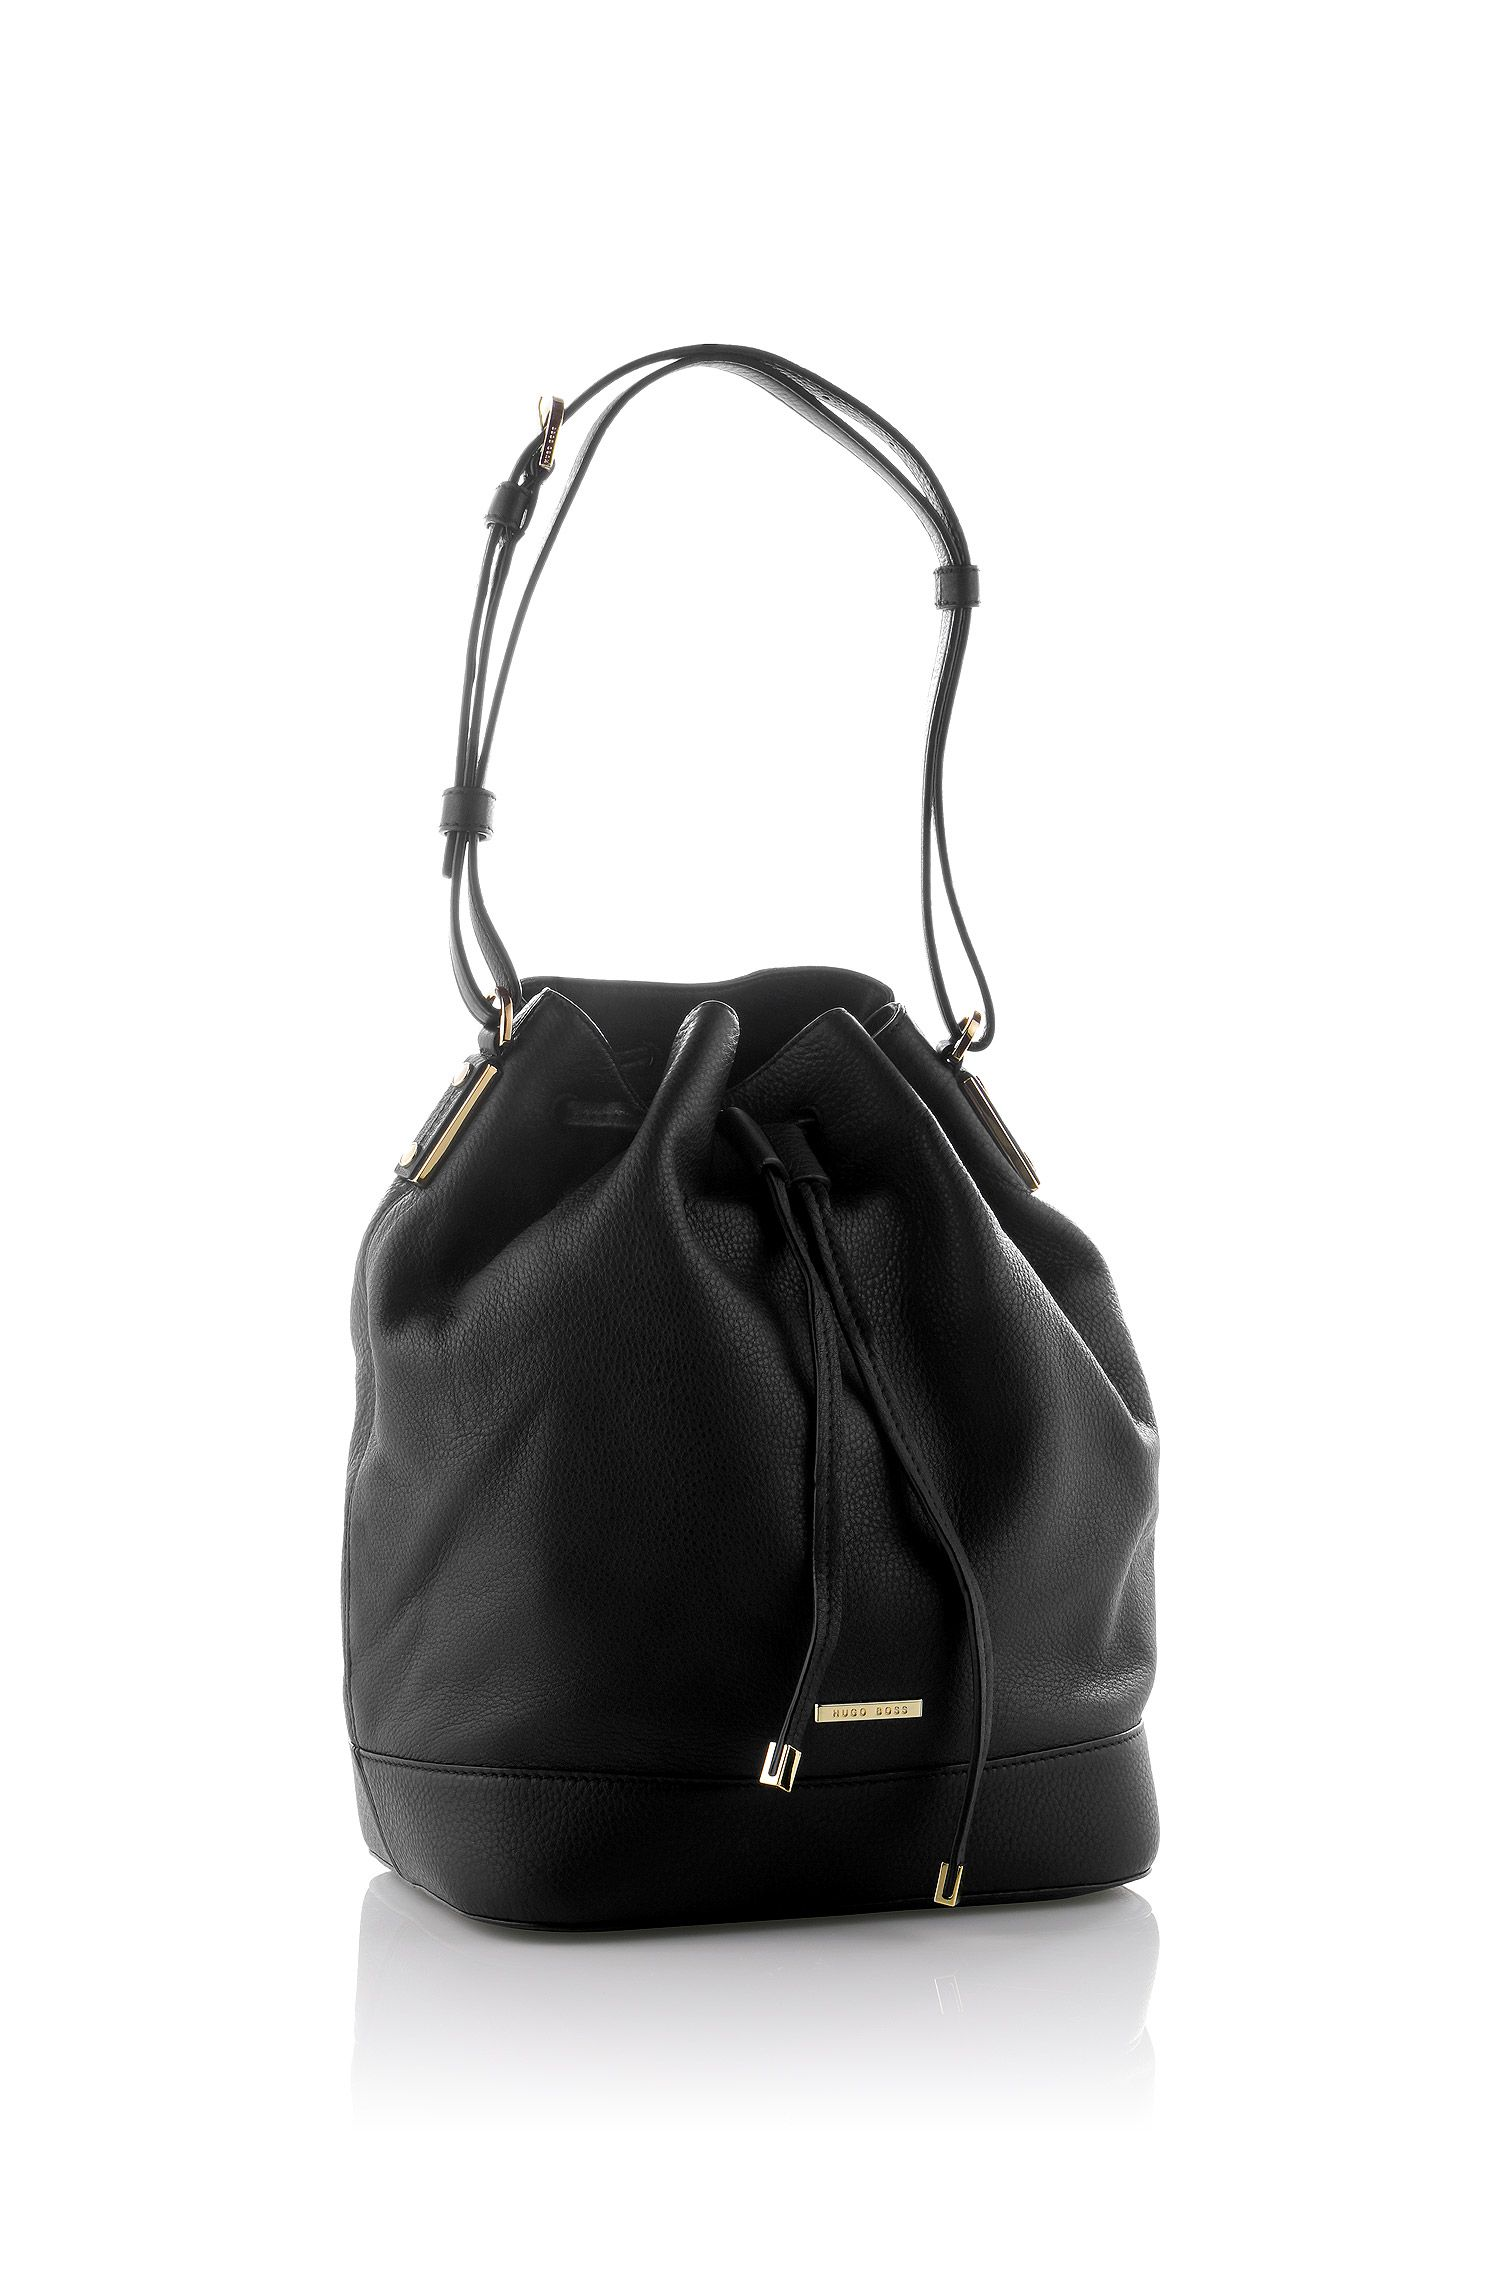 Drawstring bag 'Malinda-G' in leather